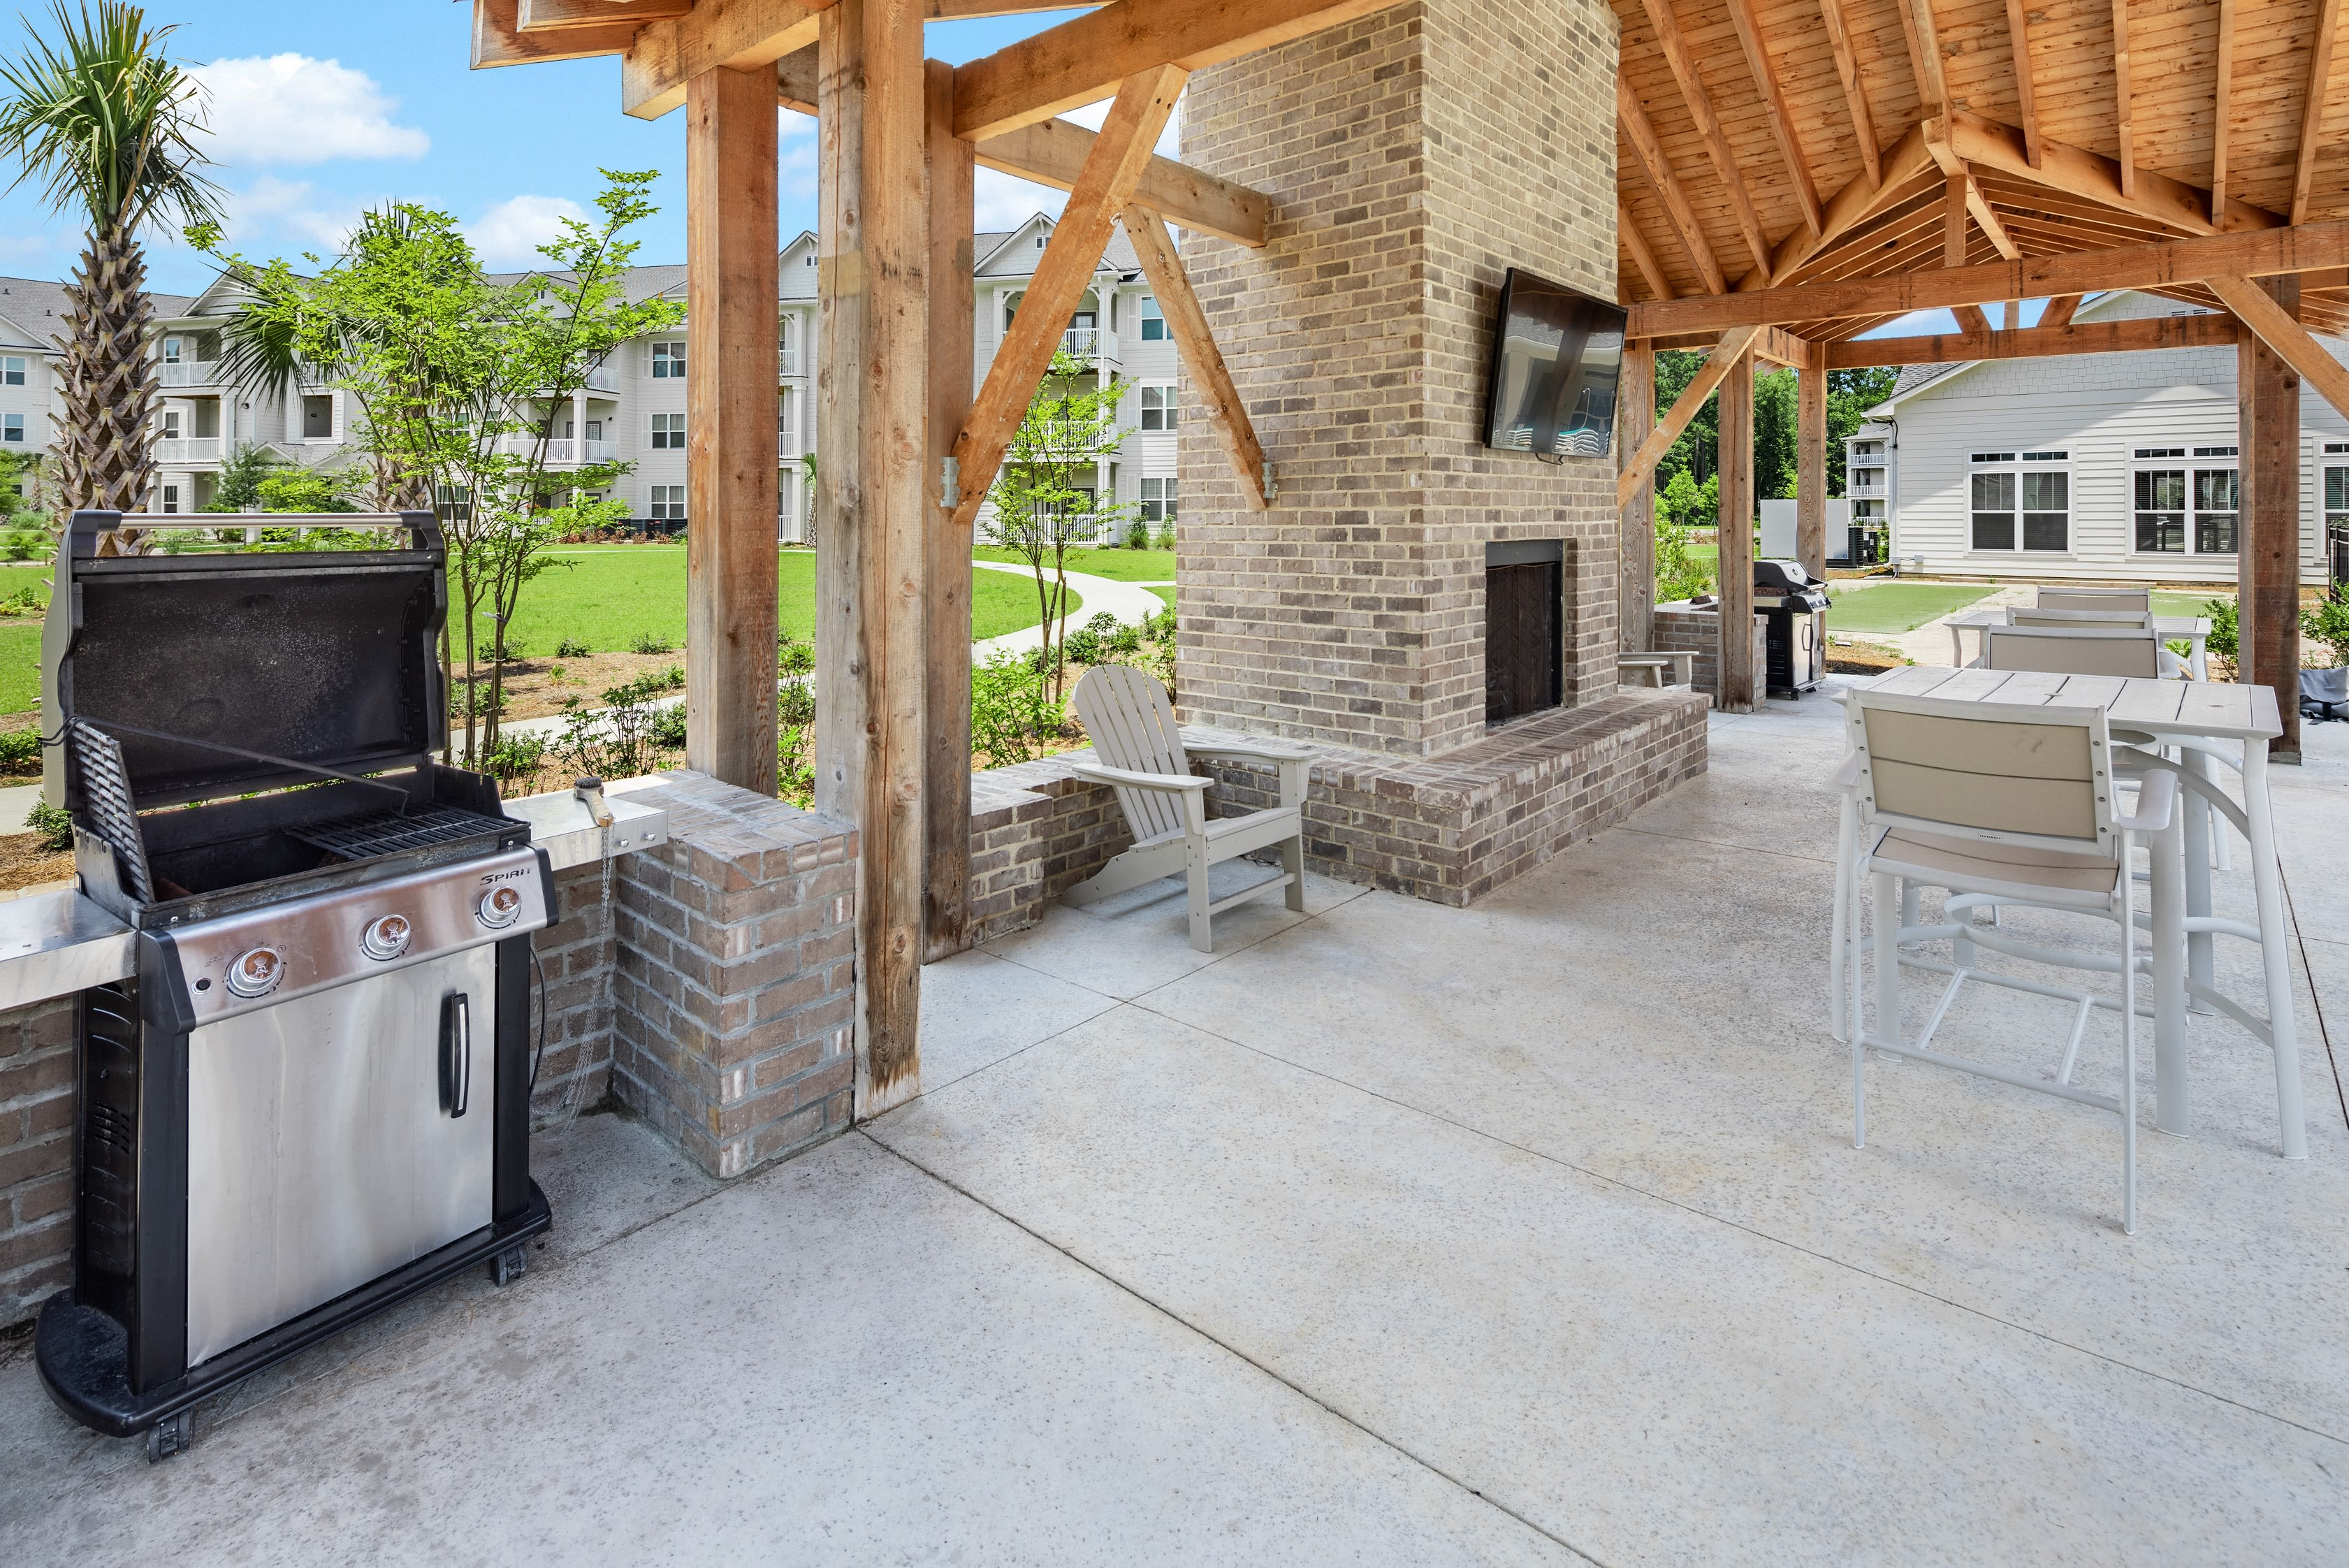 Outdoor grilling area with seating and places to cook poolside at The Mason in Ladson, South Carolina